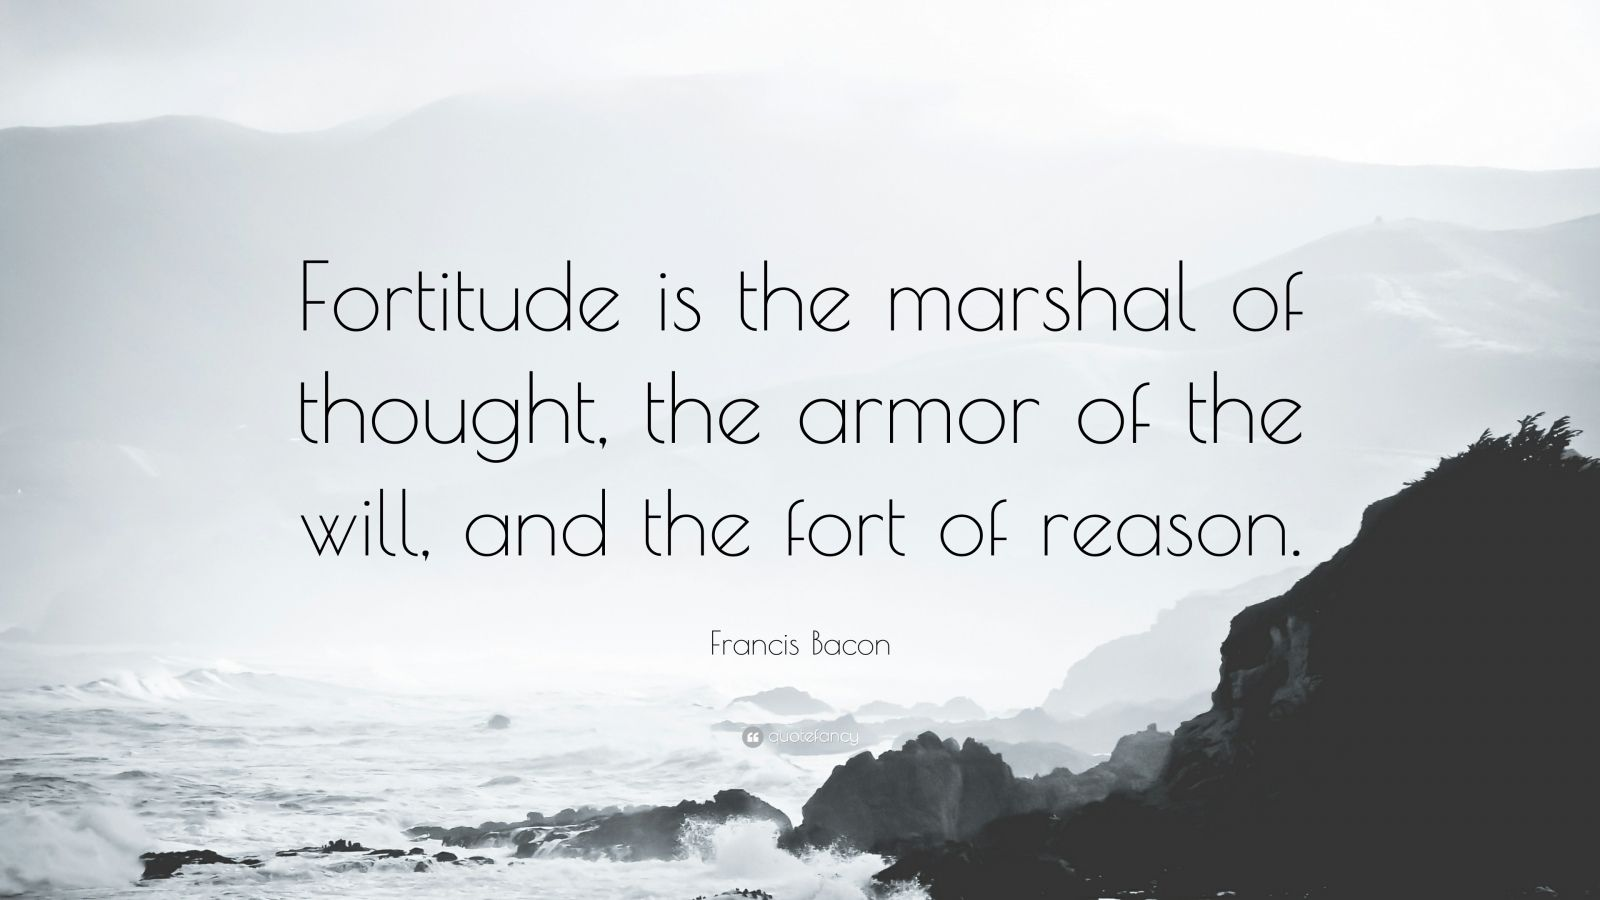 """Francis Bacon Quote: """"Fortitude is the marshal of thought, the armor of the will, and the fort of reason."""""""